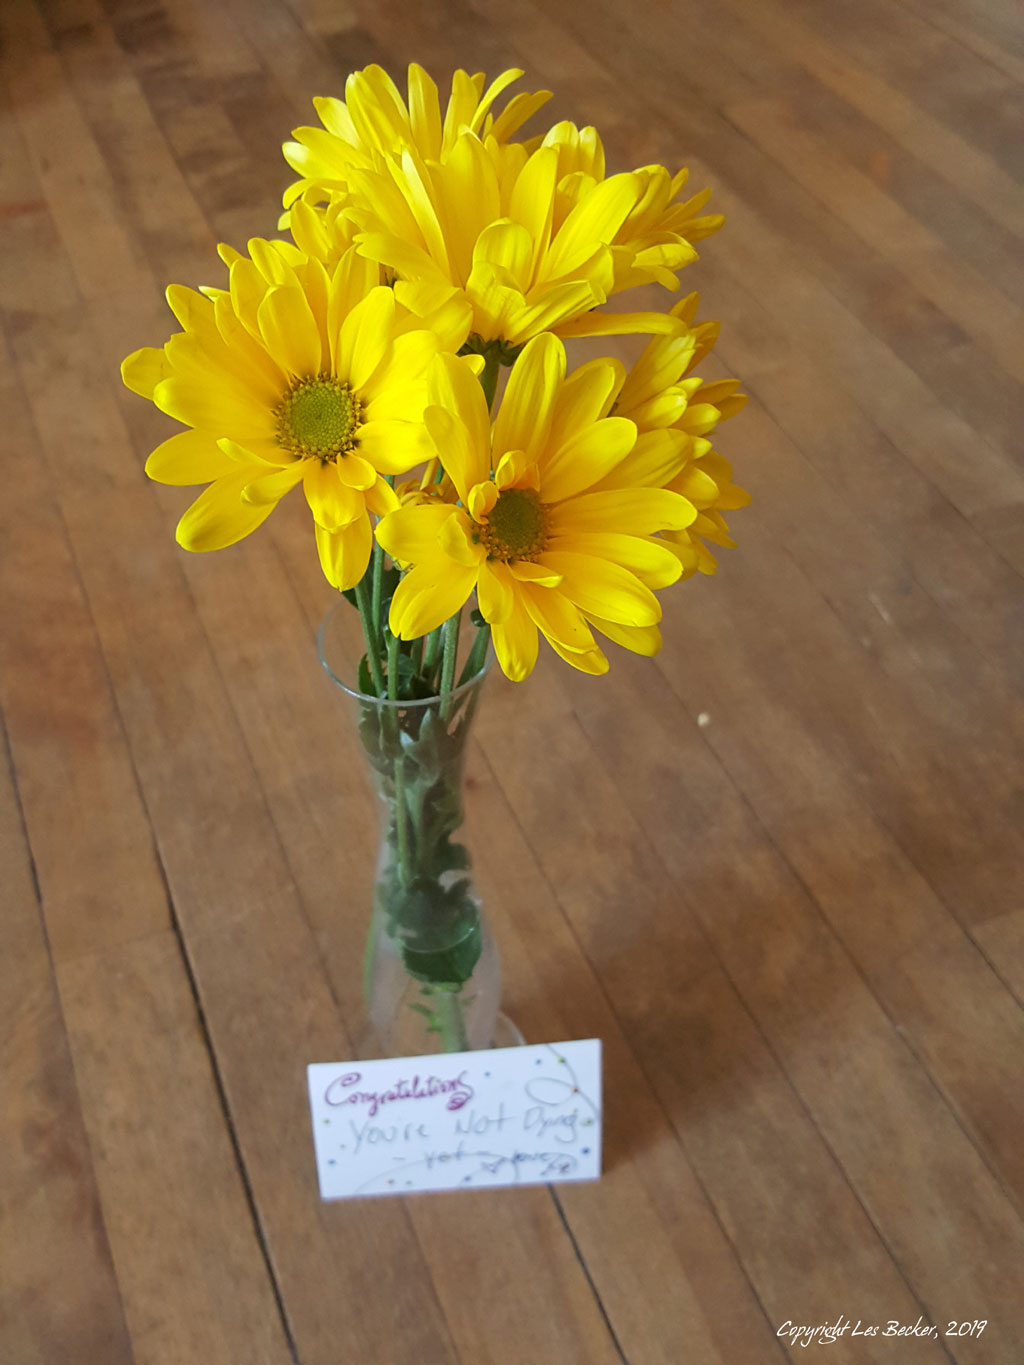 Bouquet of yellow daisies in a vase, with card